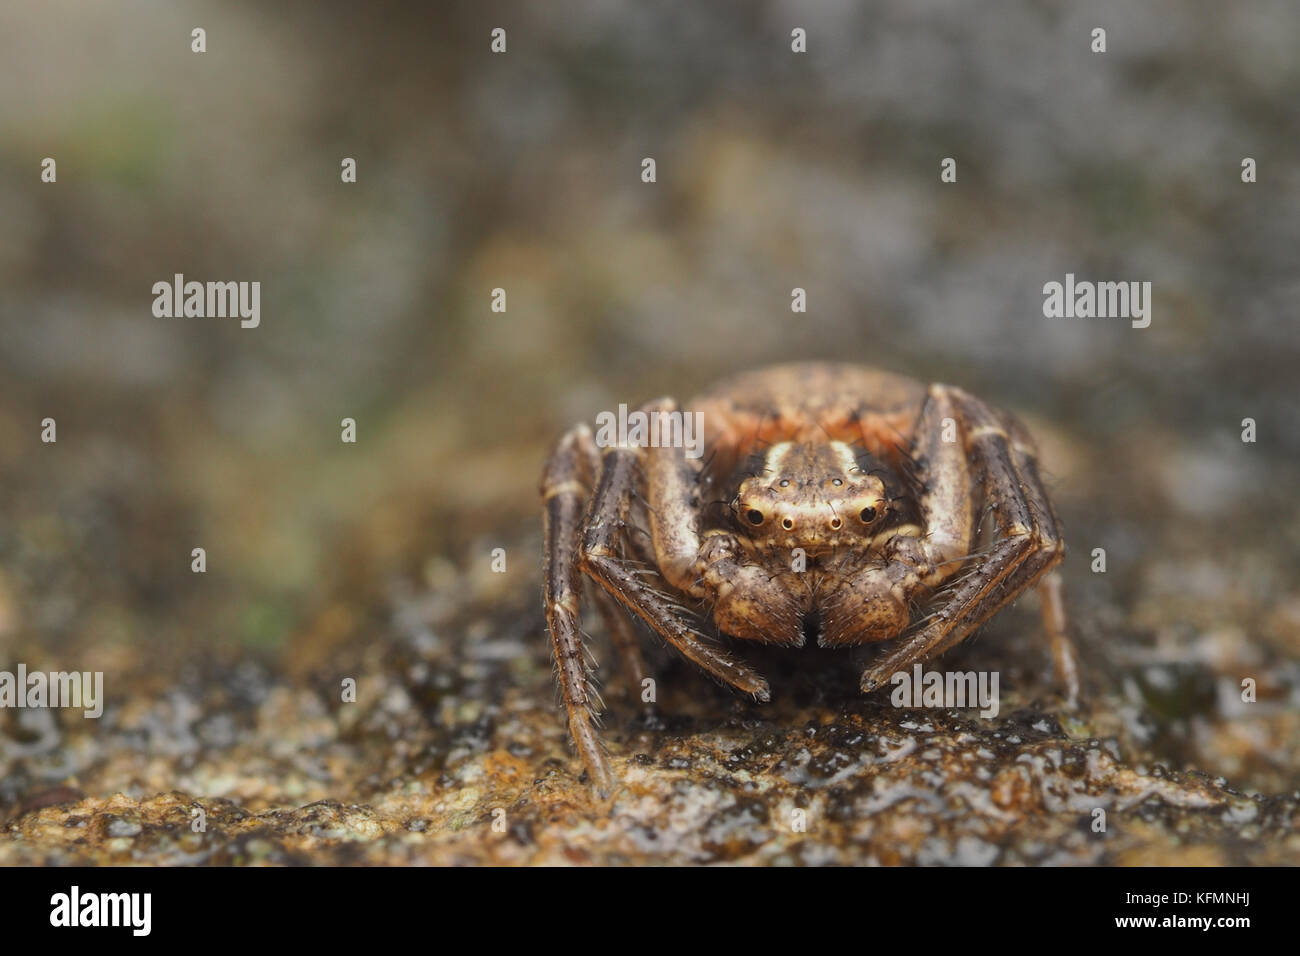 Crab Spider (Xysticus sp.) resting on large boulder. Tipperary, Ireland - Stock Image